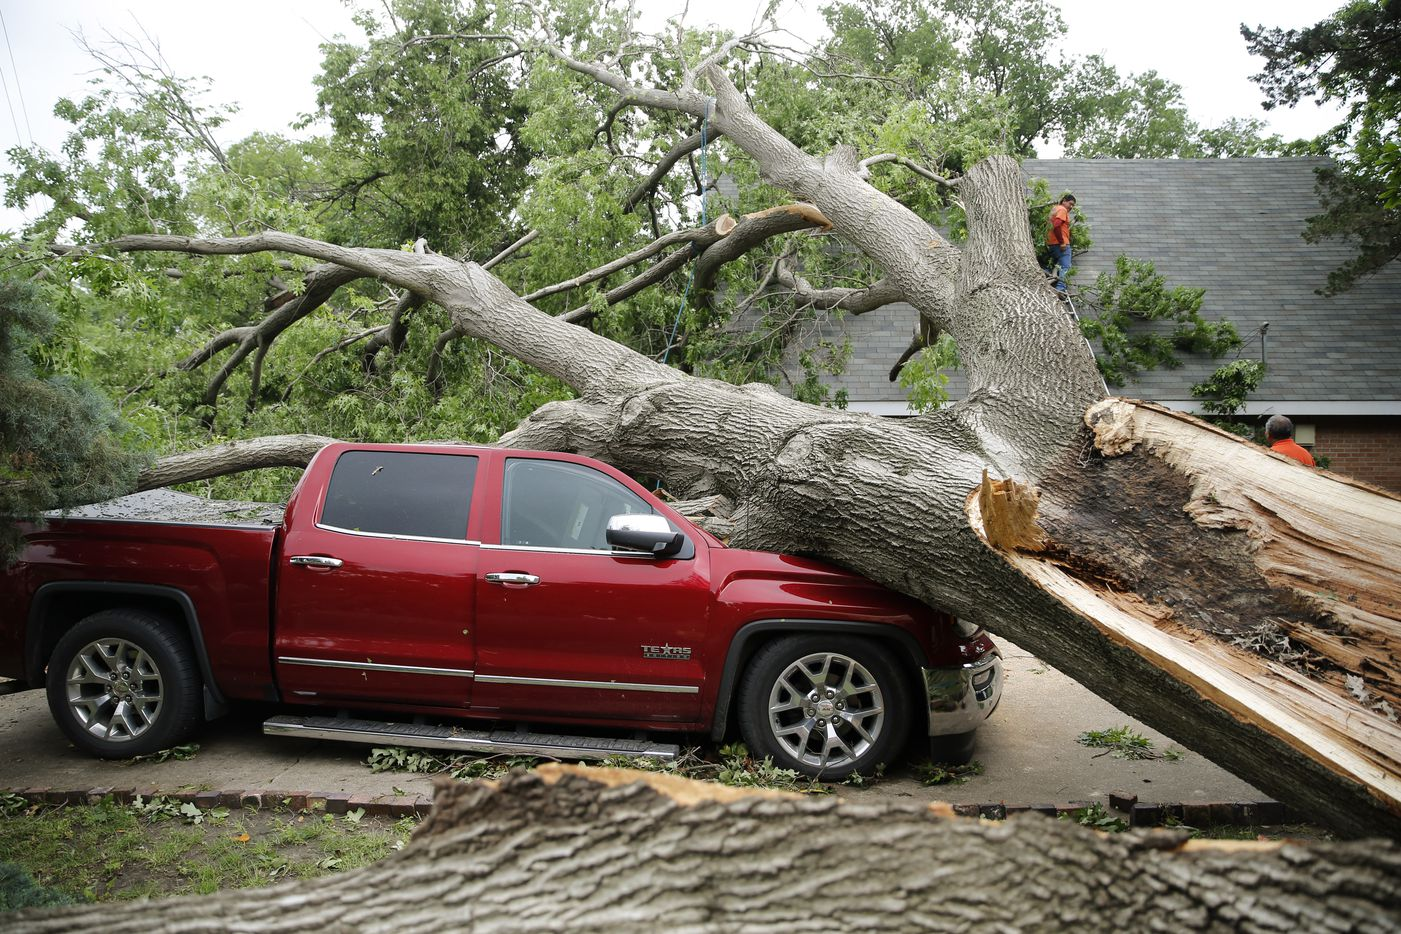 Red oak tree that was planted in 1963 sits atop a truck and a house after a tornado passed through in Denton, Texas on Wednesday, May 1, 2019. (Vernon Bryant/The Dallas Morning News)